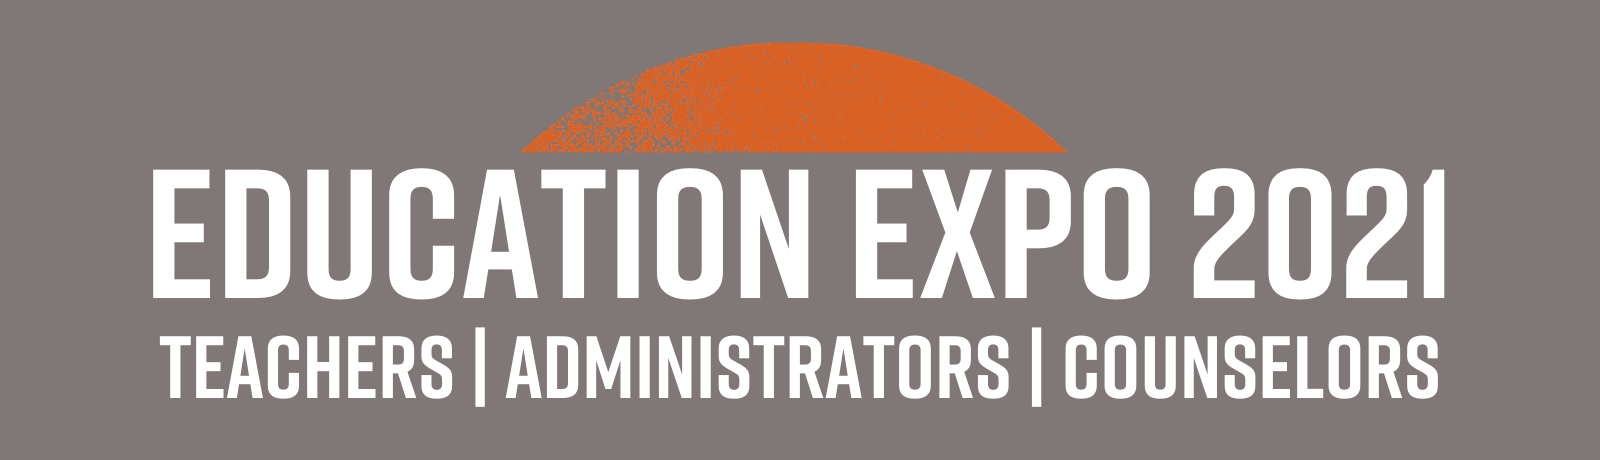 Register for the Education Expo 2021